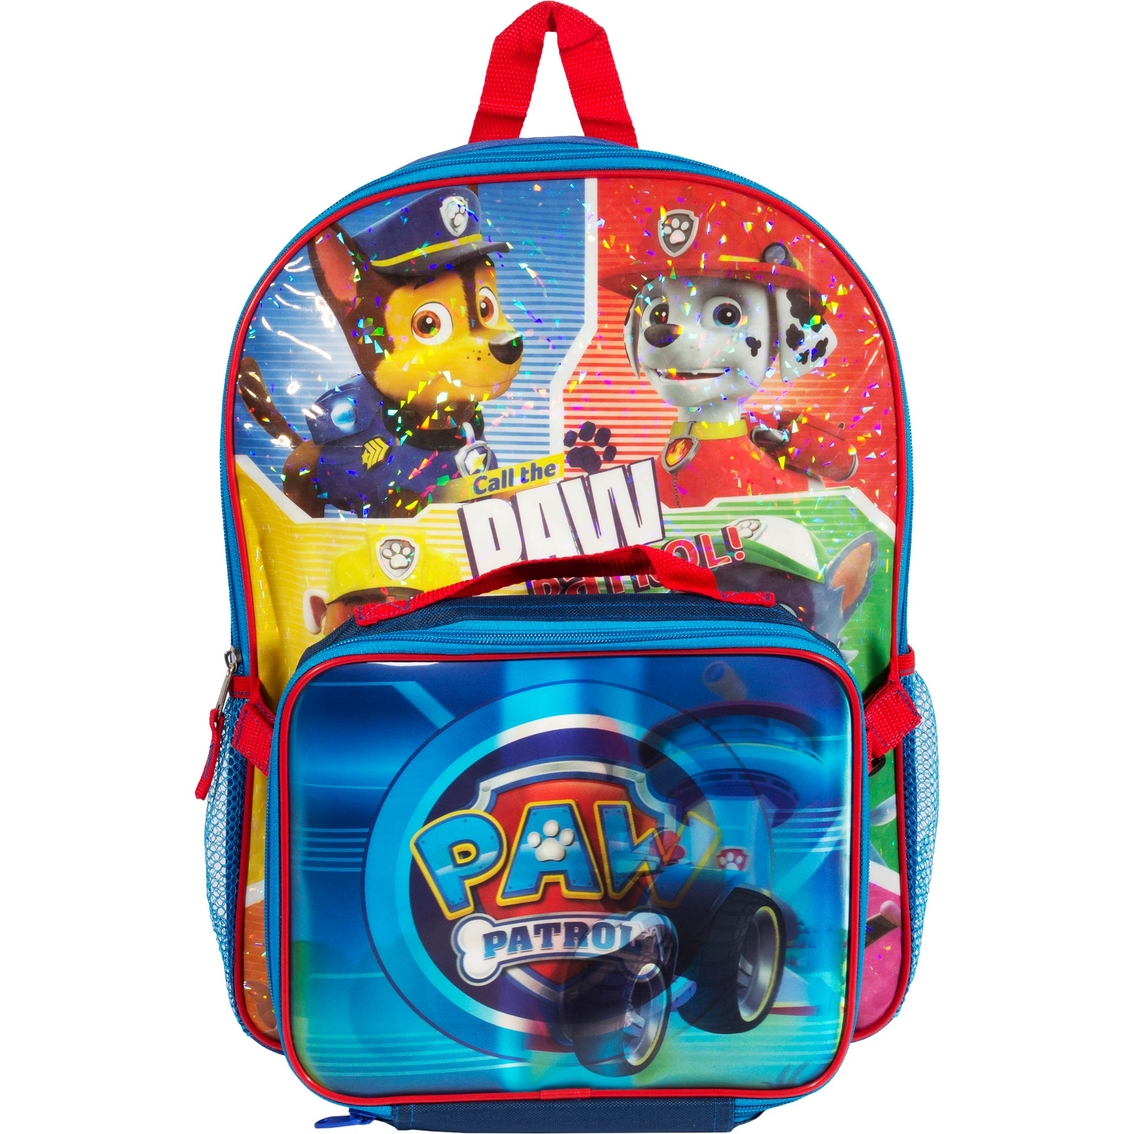 d270afcf21f Nickelodeon Paw Patrol Backpack With Lunch Kit | Backpacks | More ...